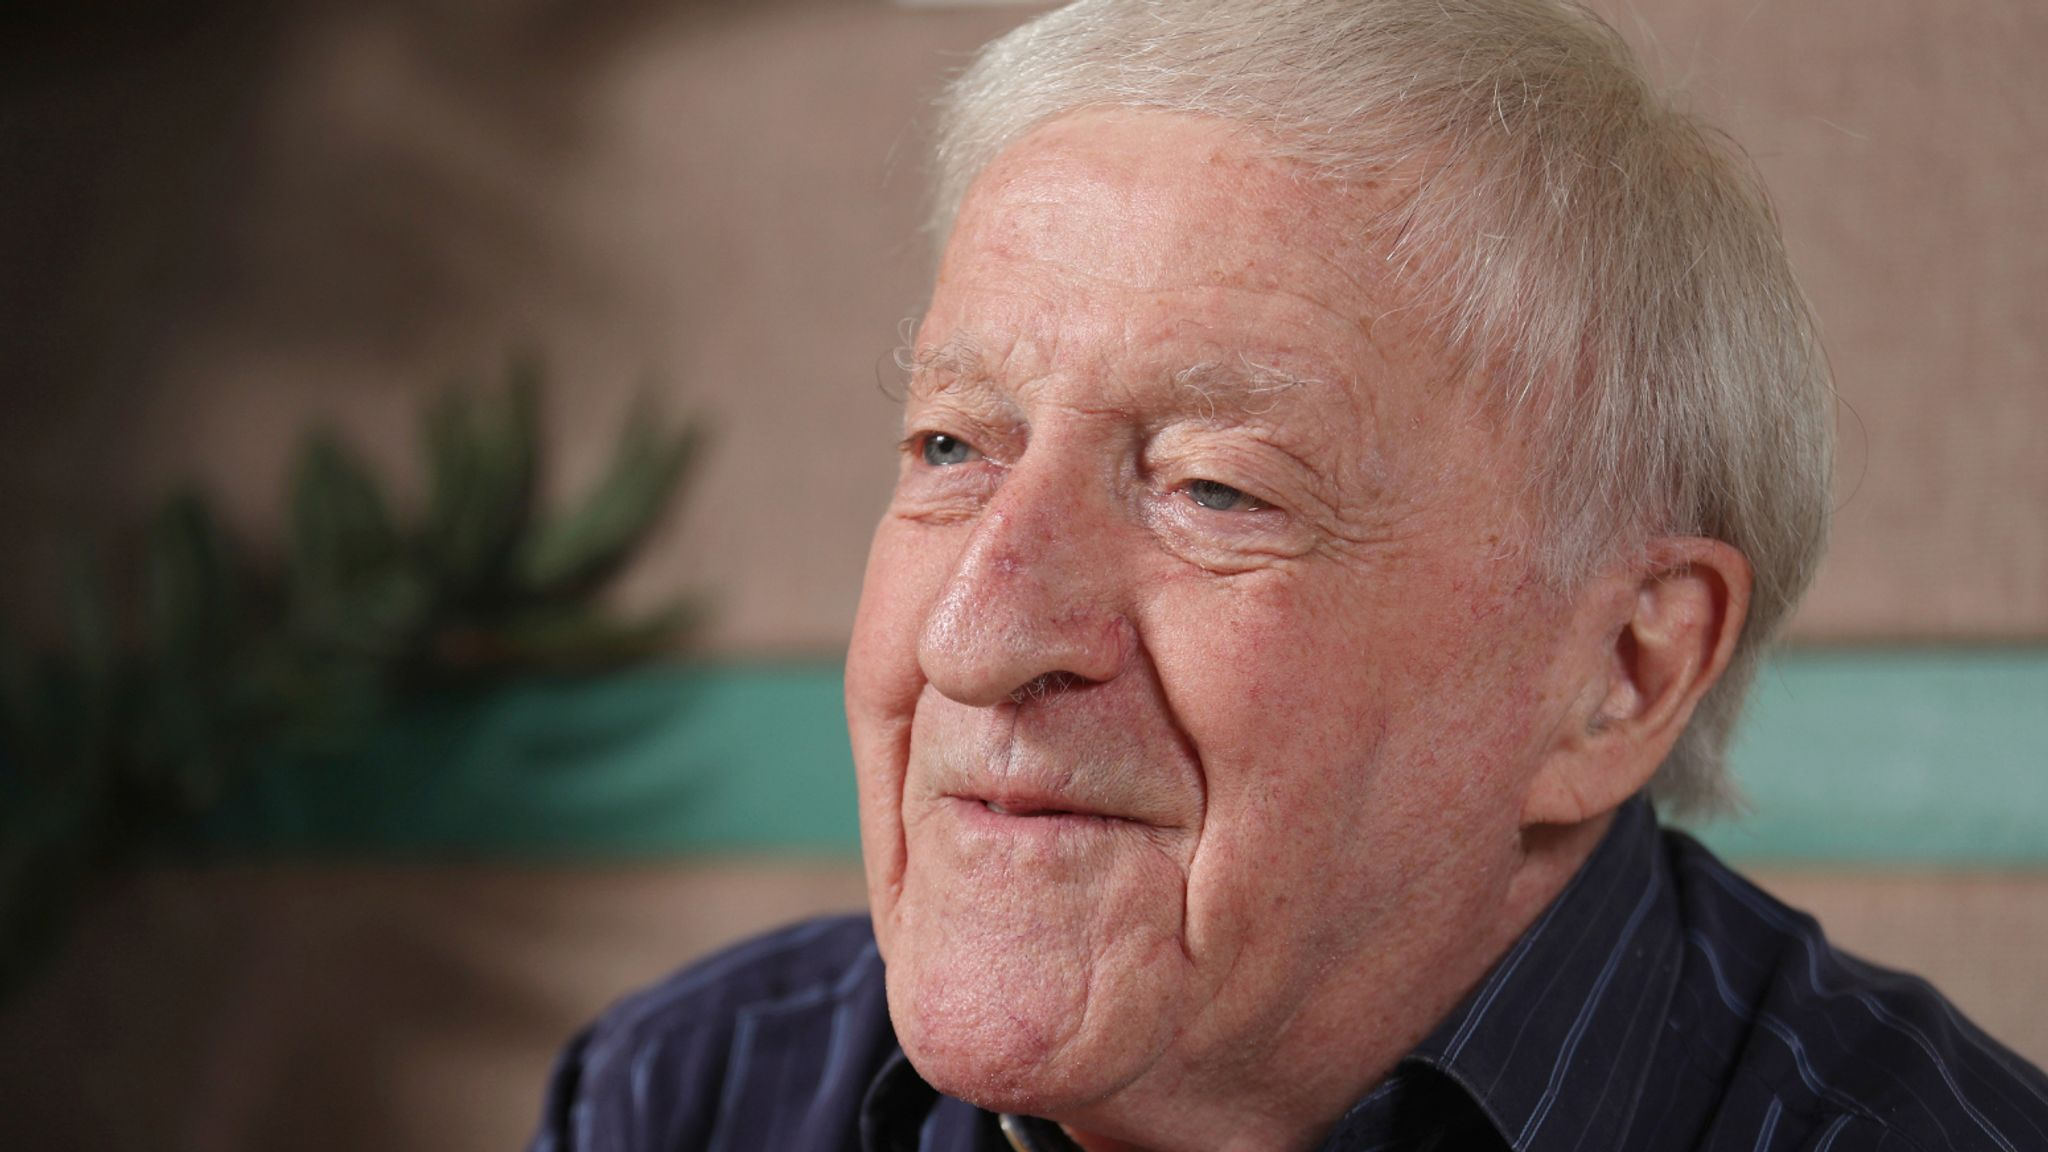 Chieftains founder Paddy Moloney dies aged 83 | Ents & Arts News | Sky News